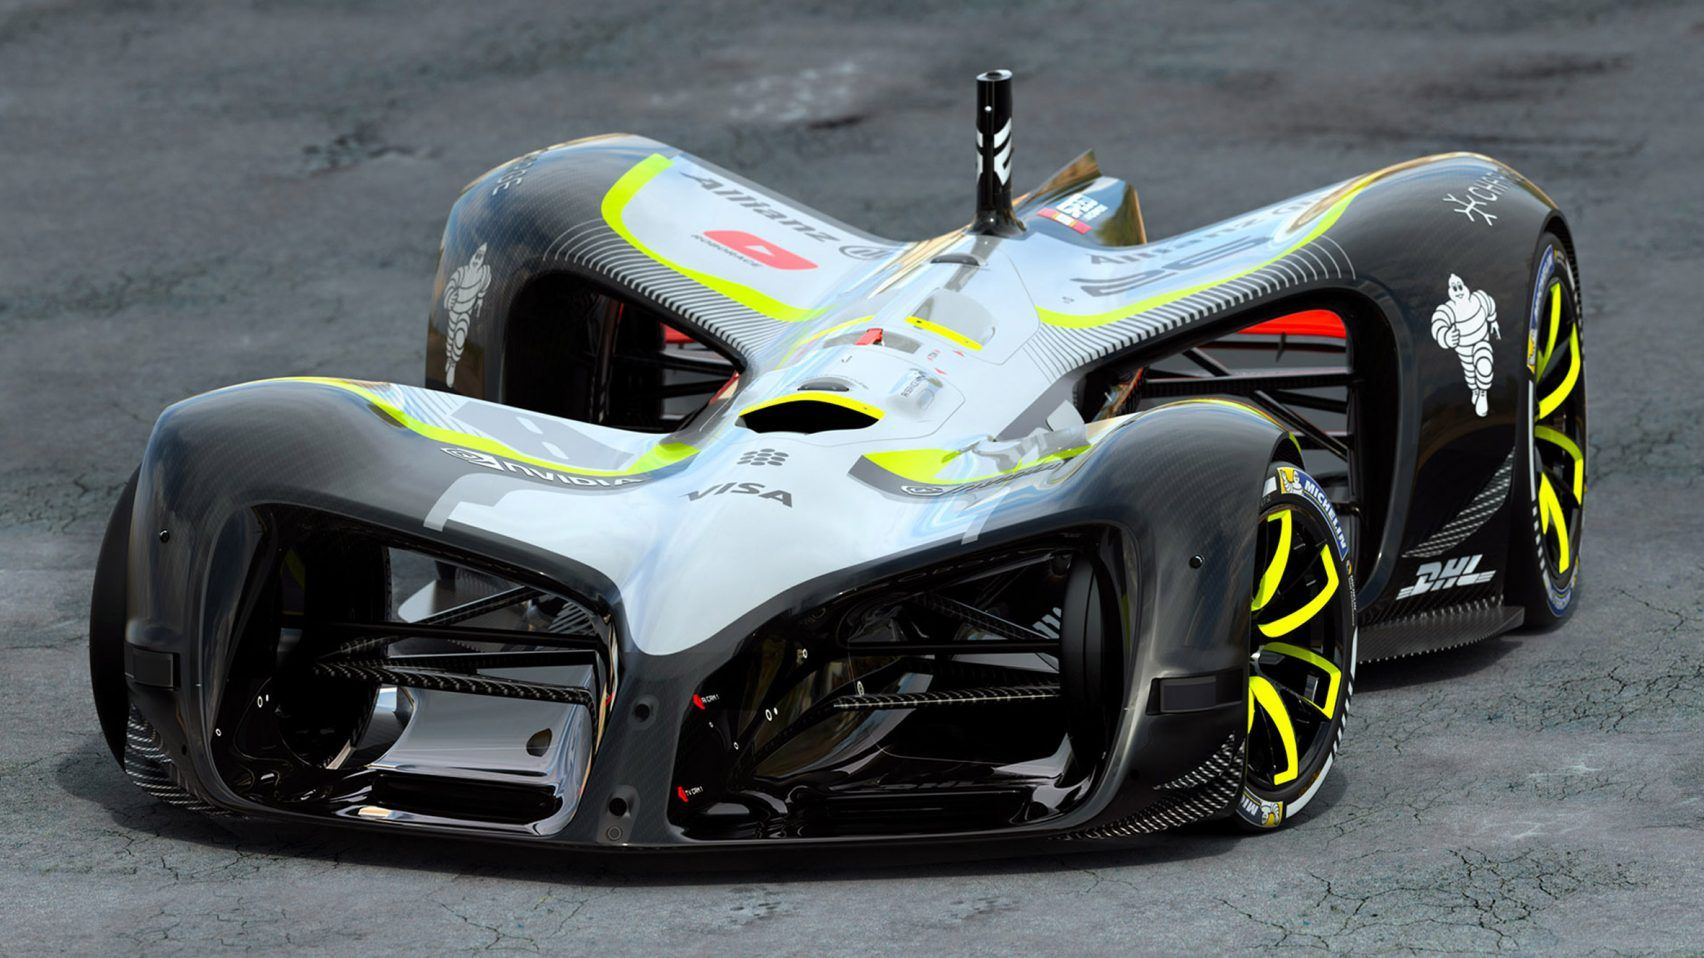 World's first driverless electric race car unveiled at MWC